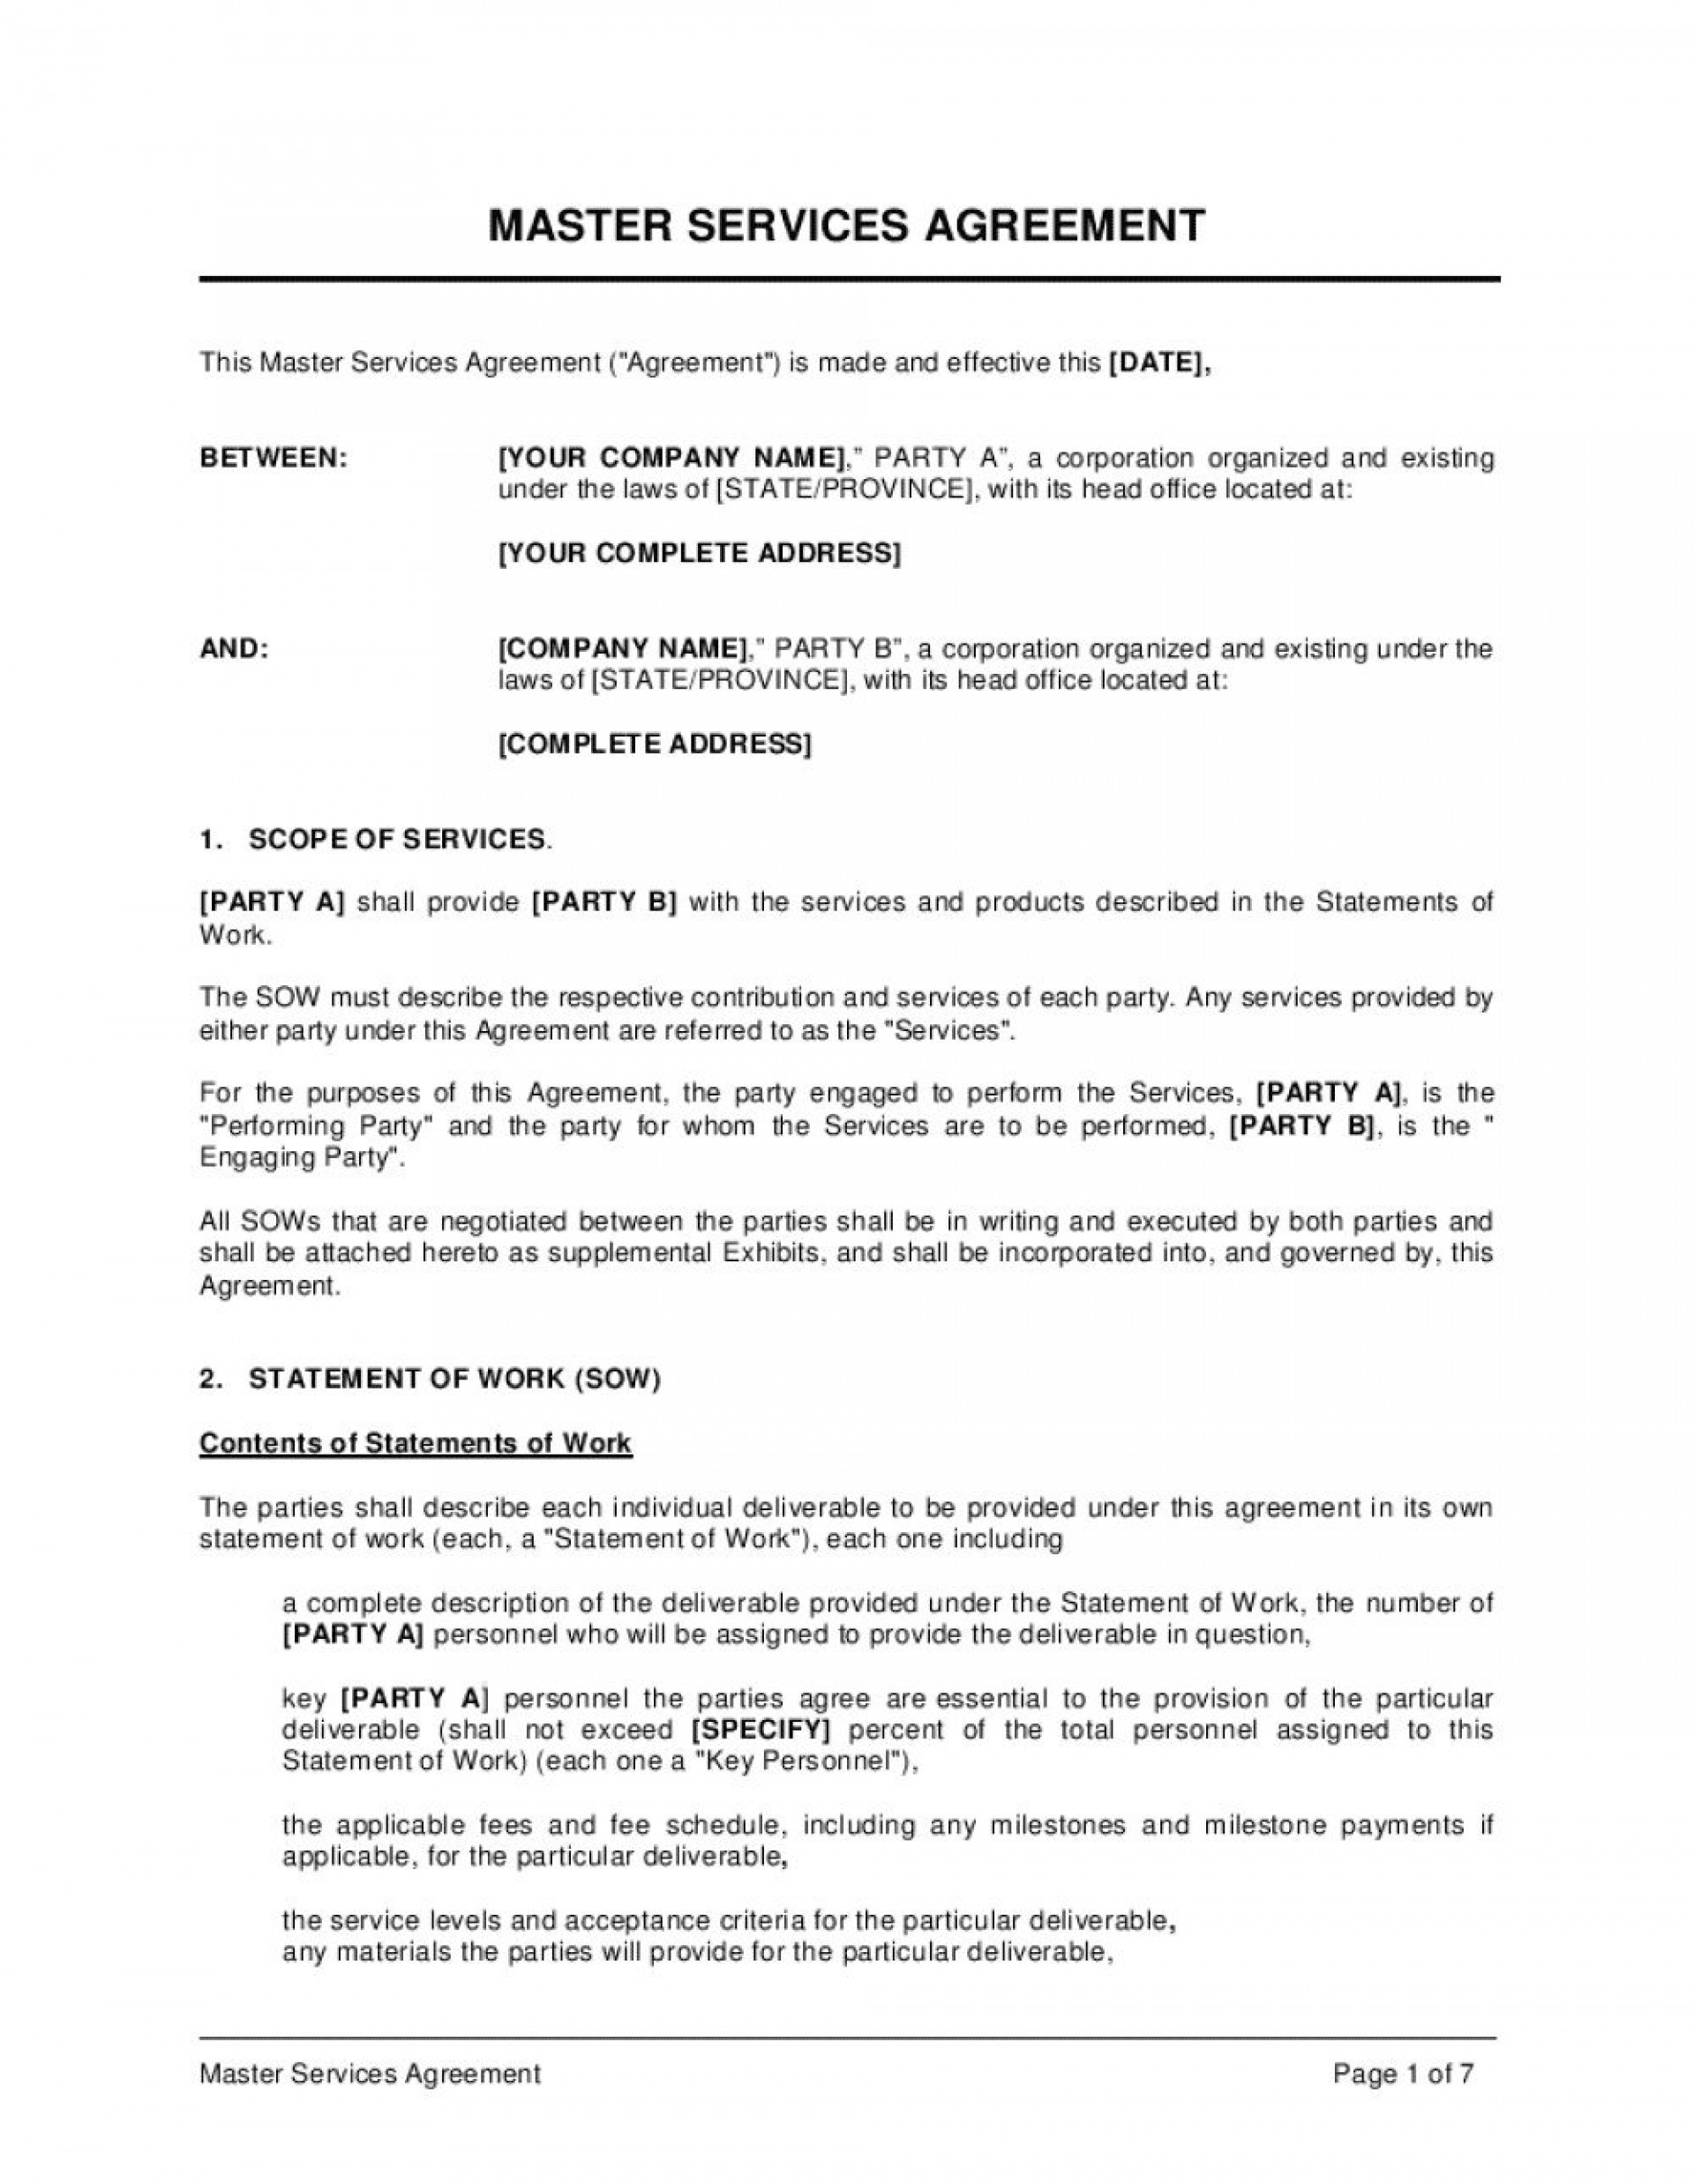 005 Excellent Master Service Agreement Template Image  Free Australia1920